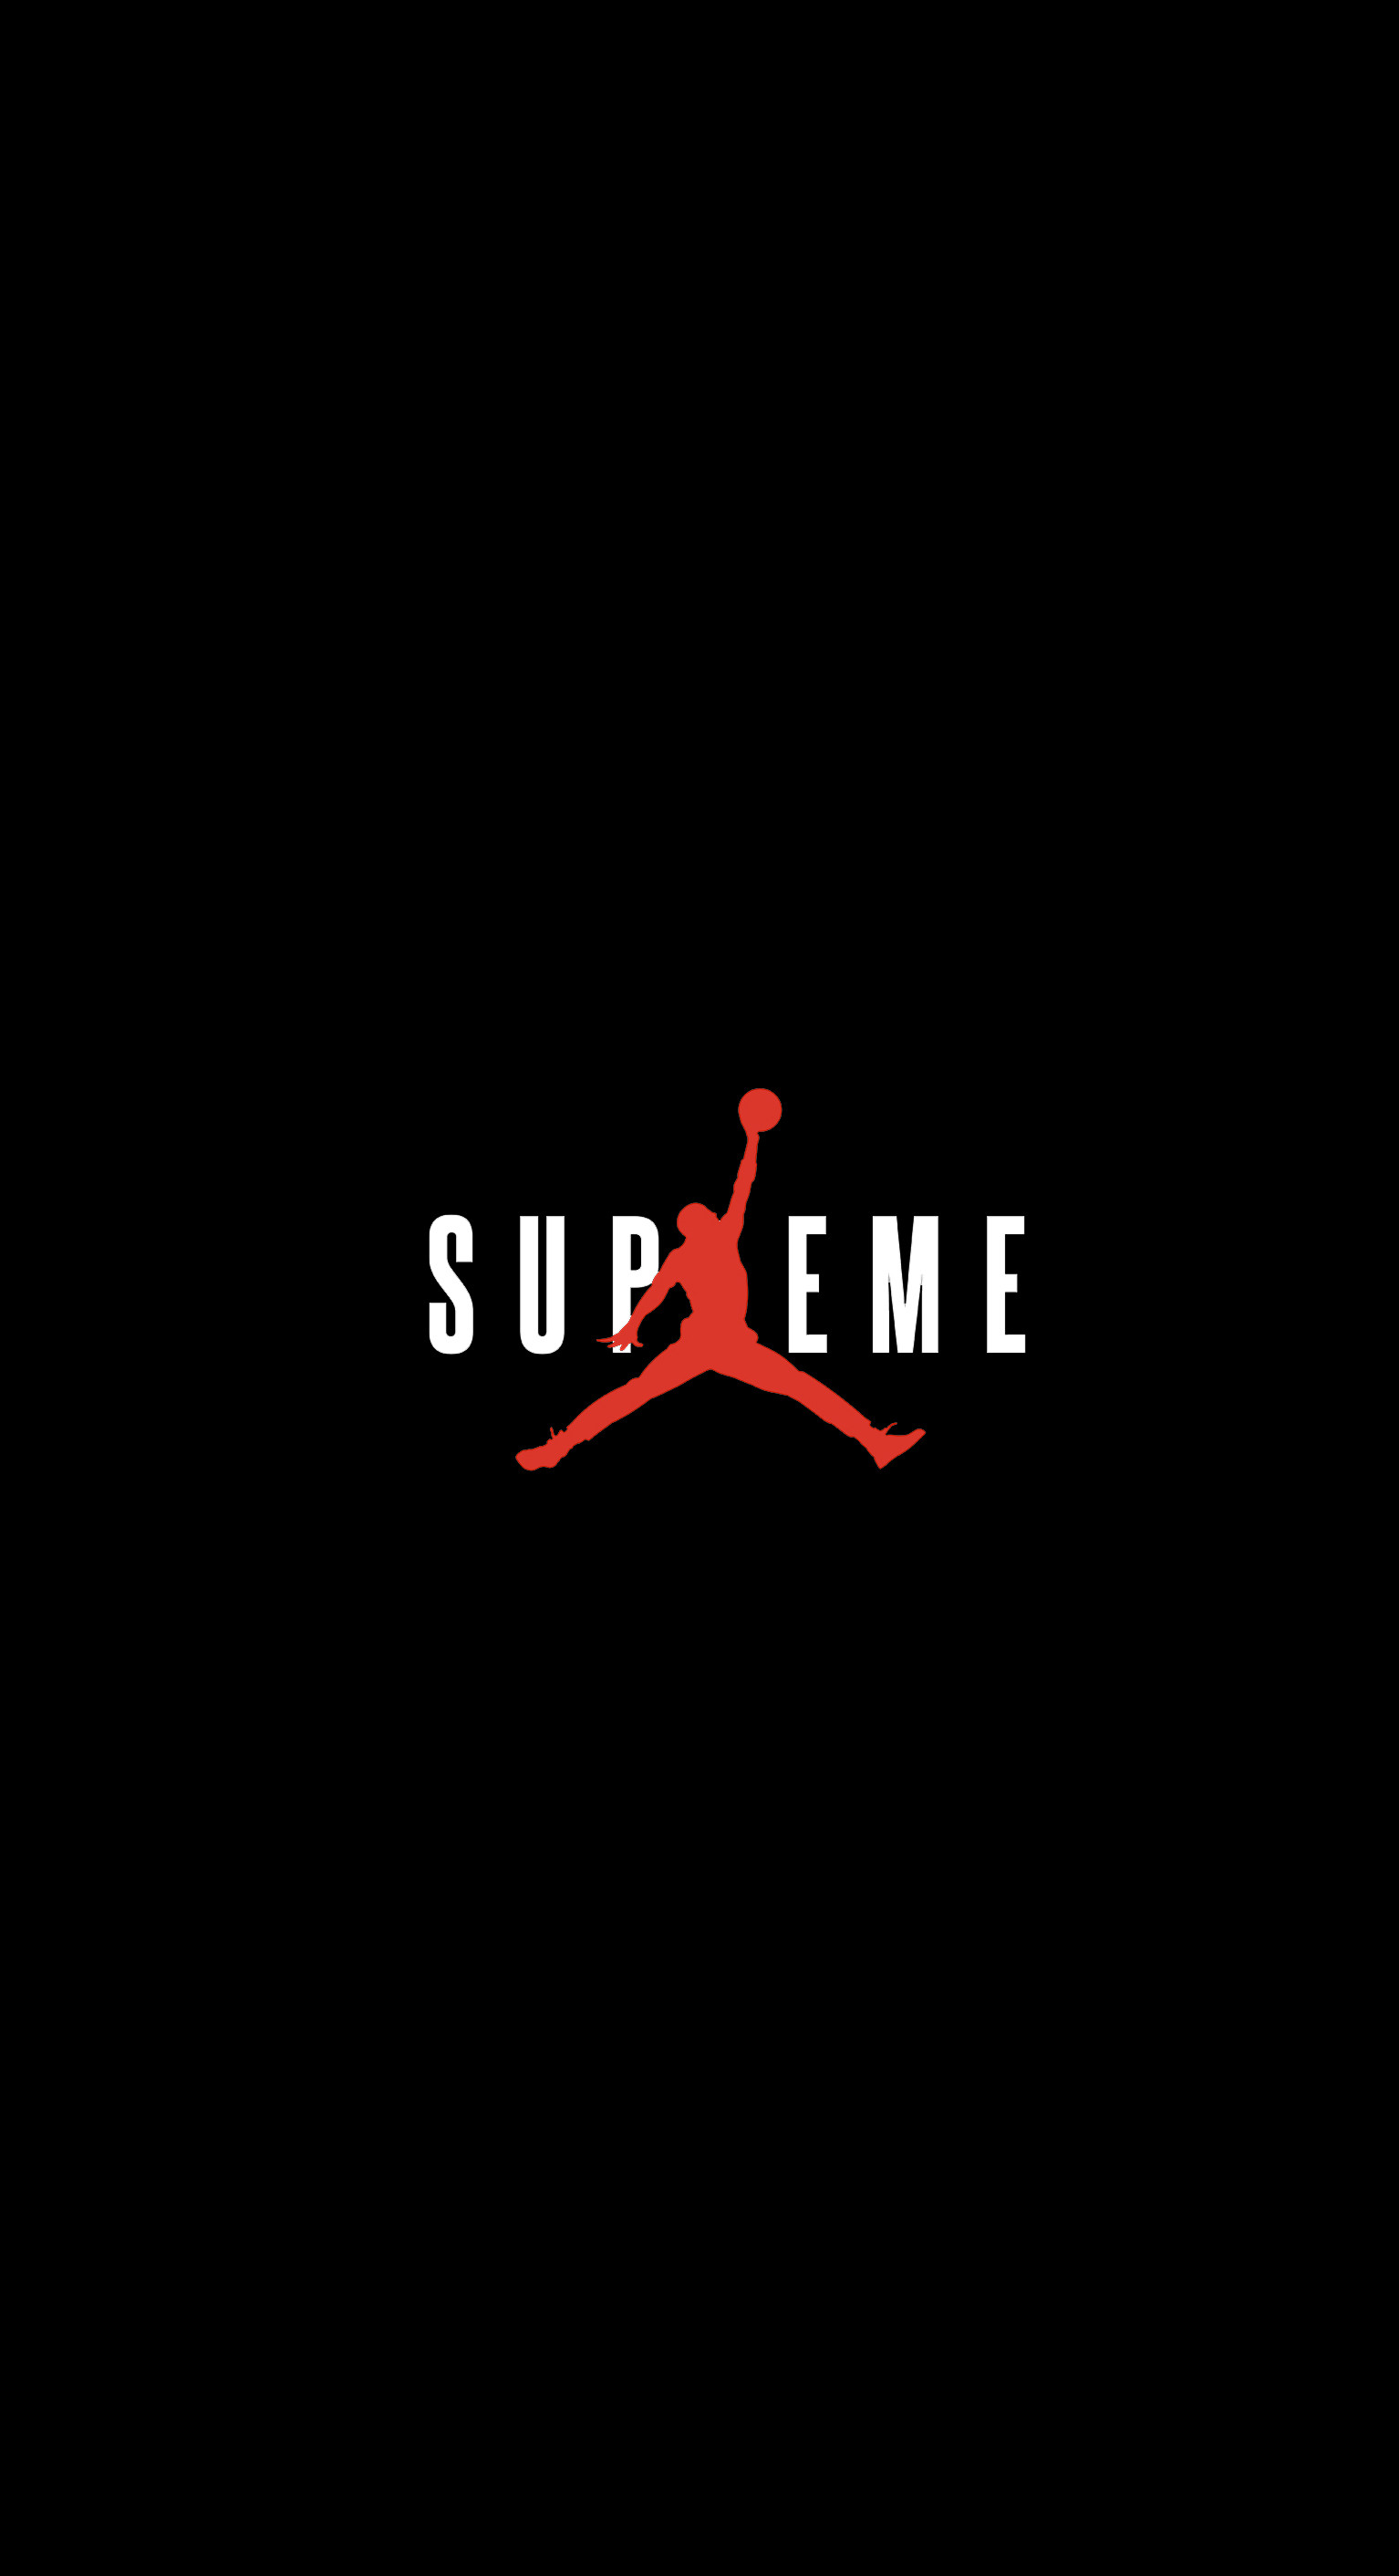 Supreme wallpaper 73 images - Hd supreme iphone wallpaper ...